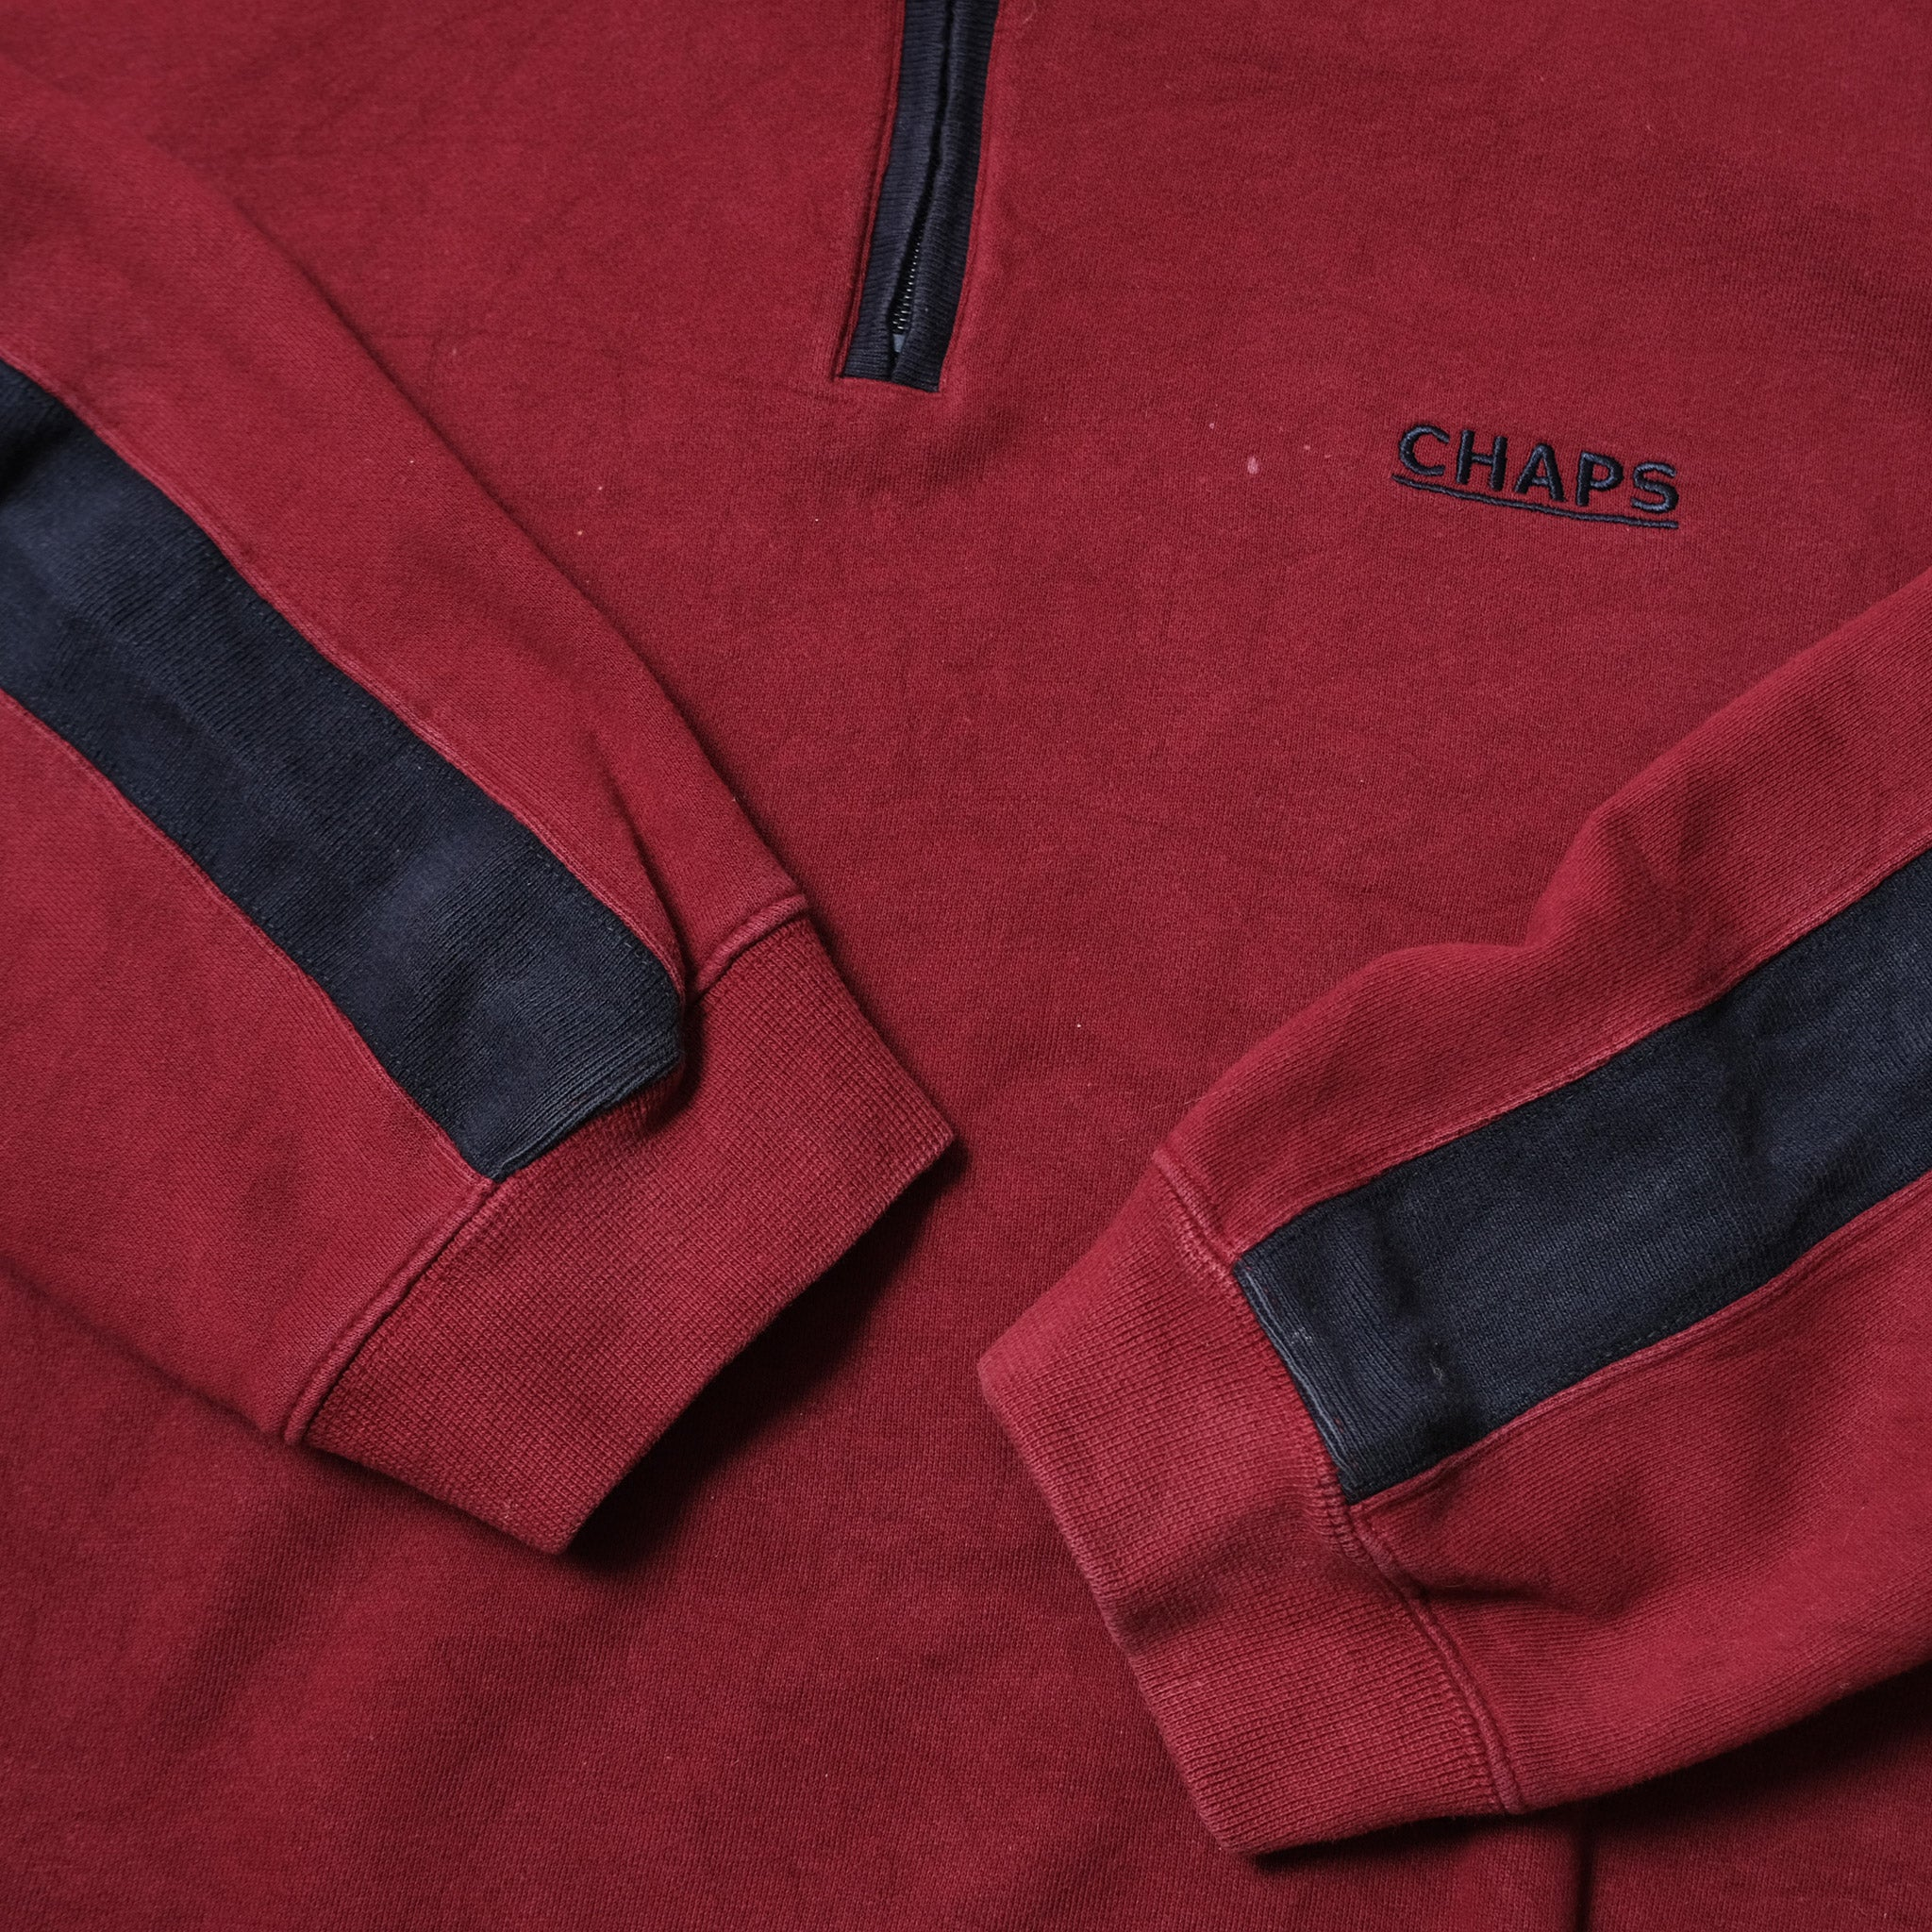 Vintage Chaps By Ralph Lauren Q-Zip Sweater XLarge